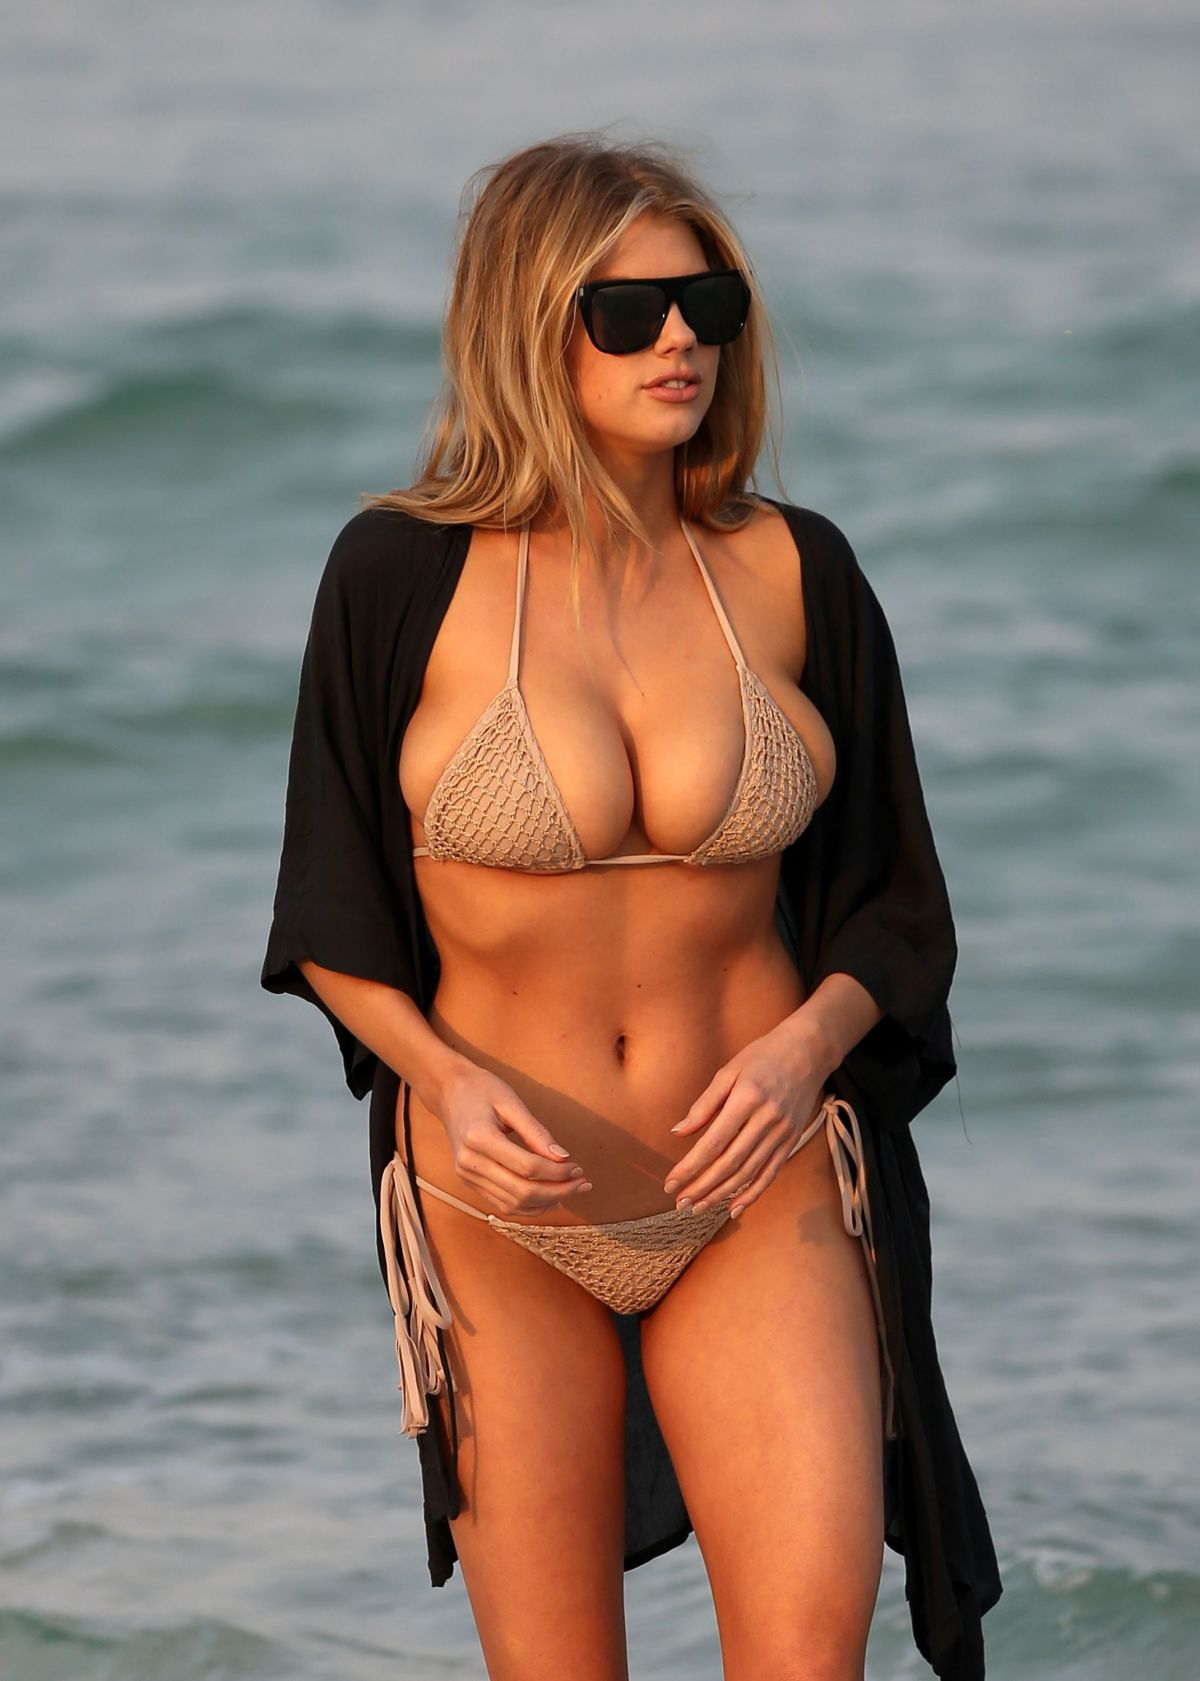 charlotte-mckinney-in-bikini-at-a-beach-in-miami-02-16-2017_1.jpg